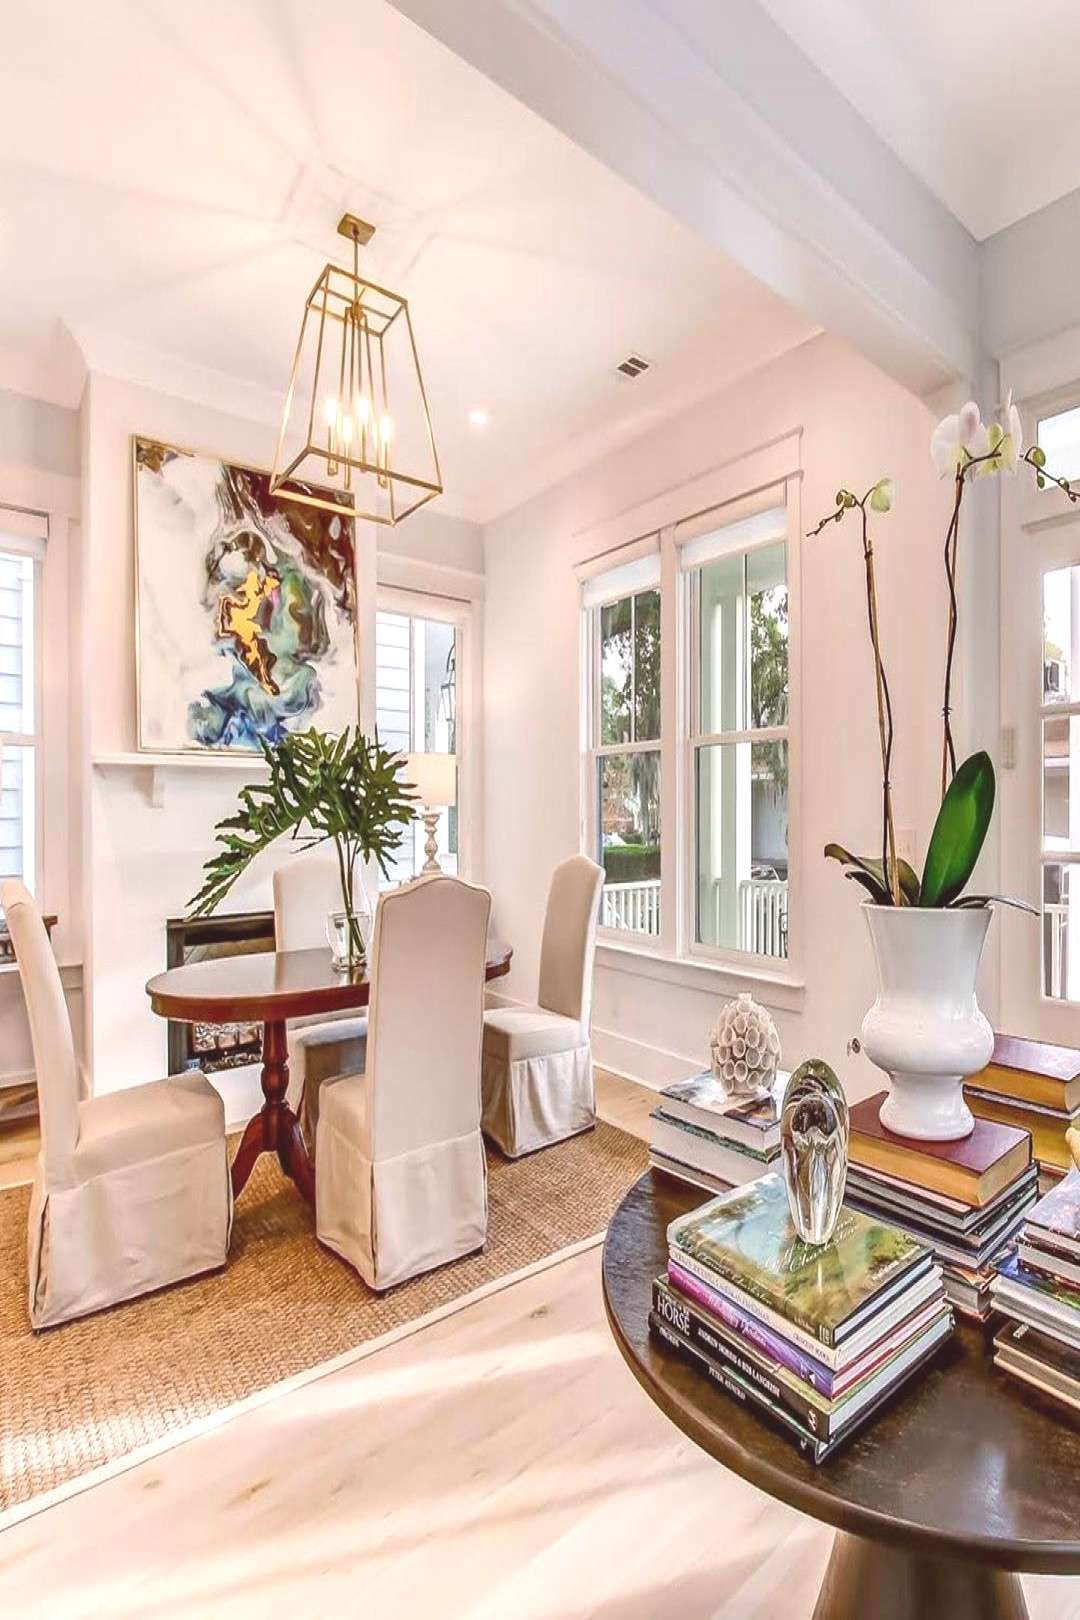 #tableliving #savannahs #hotspot #indoor #space #this #chic #room #and #the #if #ba #25 #is #br If the is #Savannah's #hotspot, this chic 3 BR, 2.5 BA space is tYou can find Front porches and more on our website.If t...